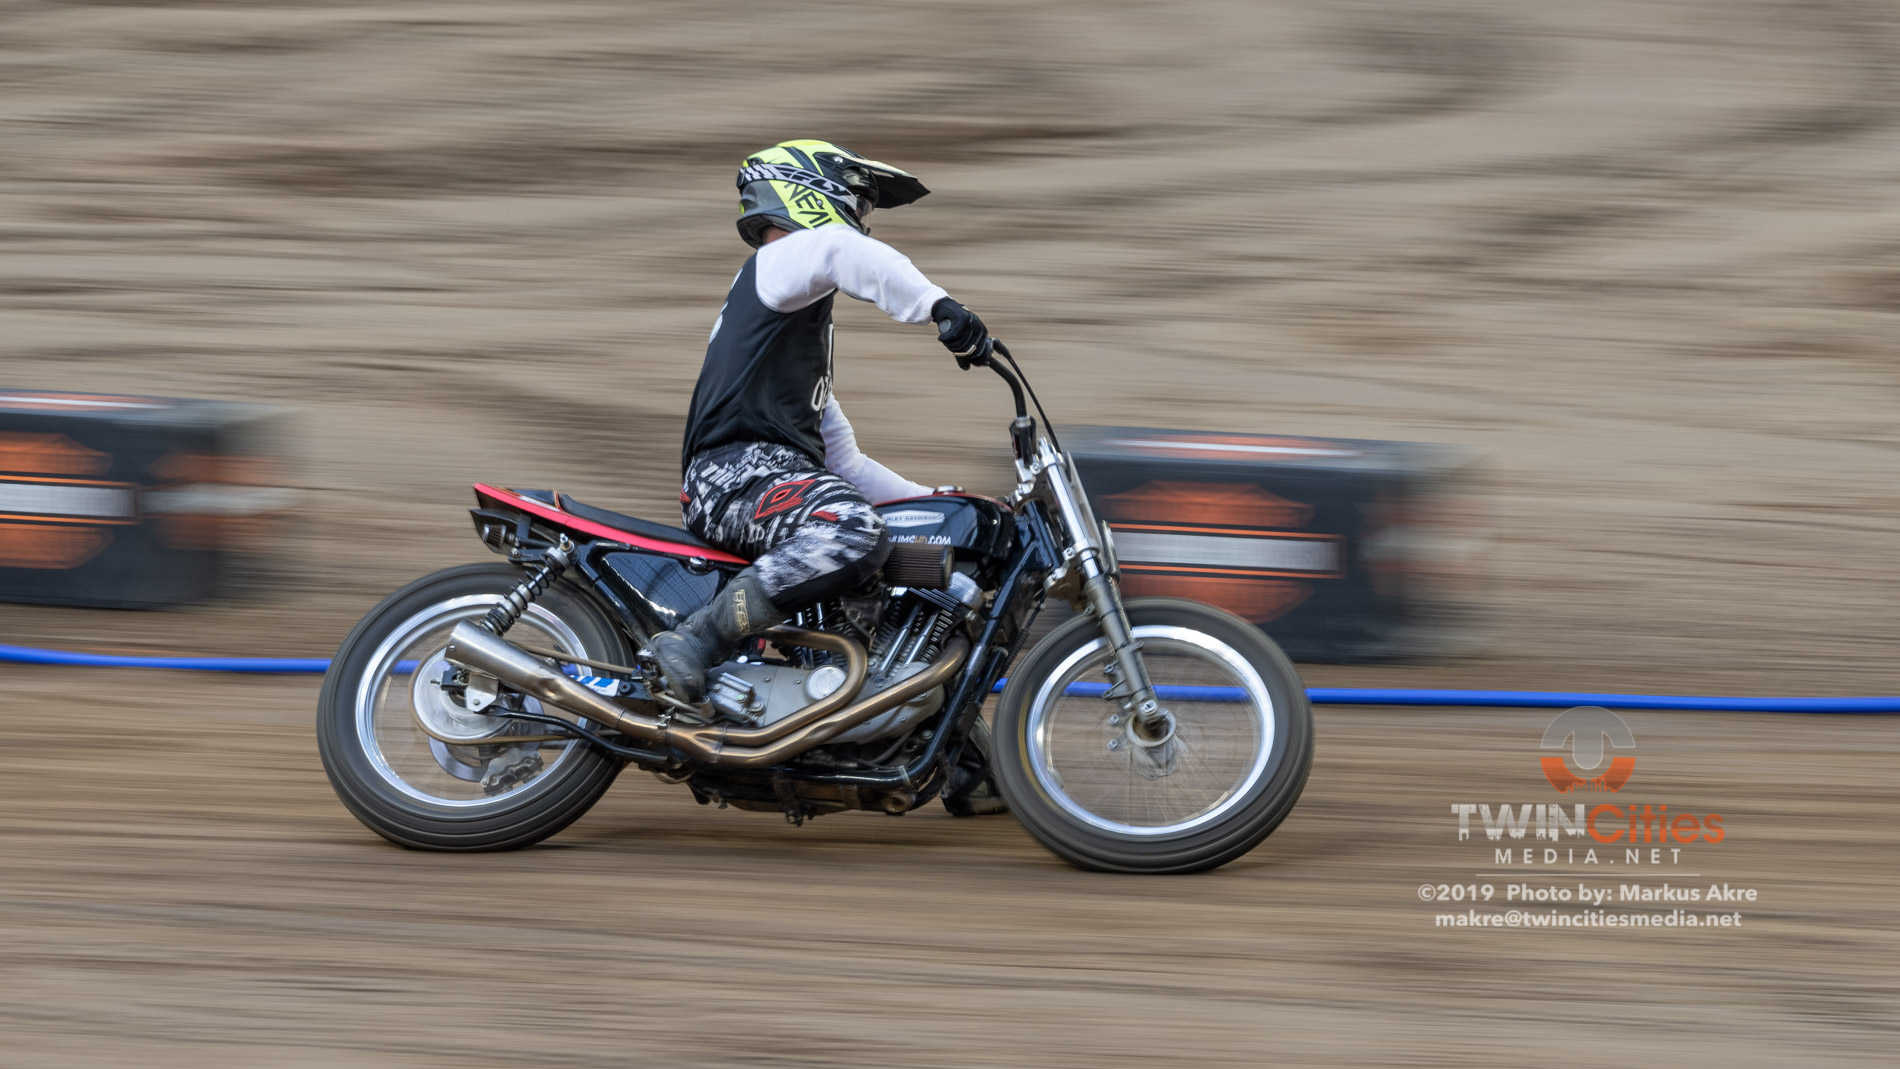 2019-X-Games-Day-4-Harley-Davidson-Hooligan-Racing-1